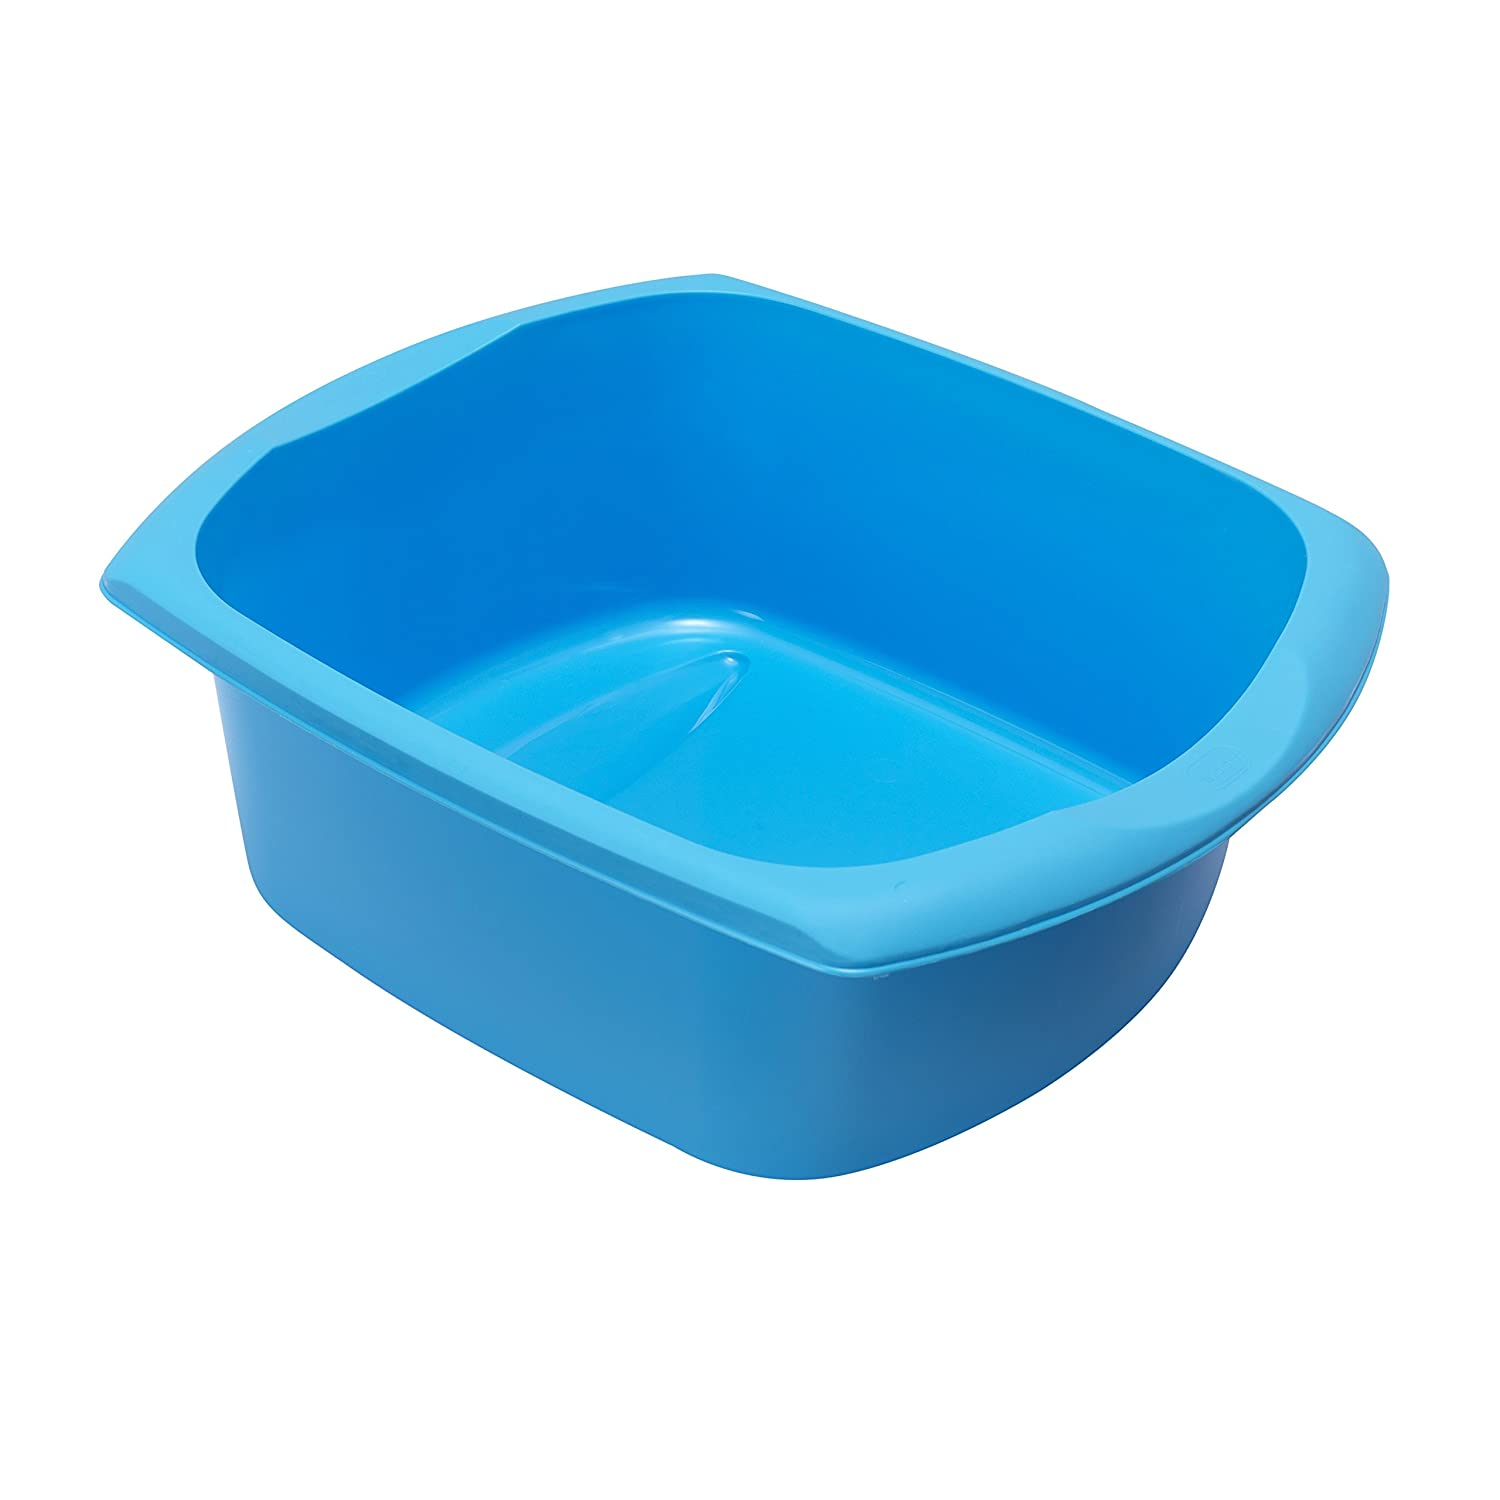 Addis 9.5 Litre Large Rectangular Bowl, Blue GroceryCentre 647891